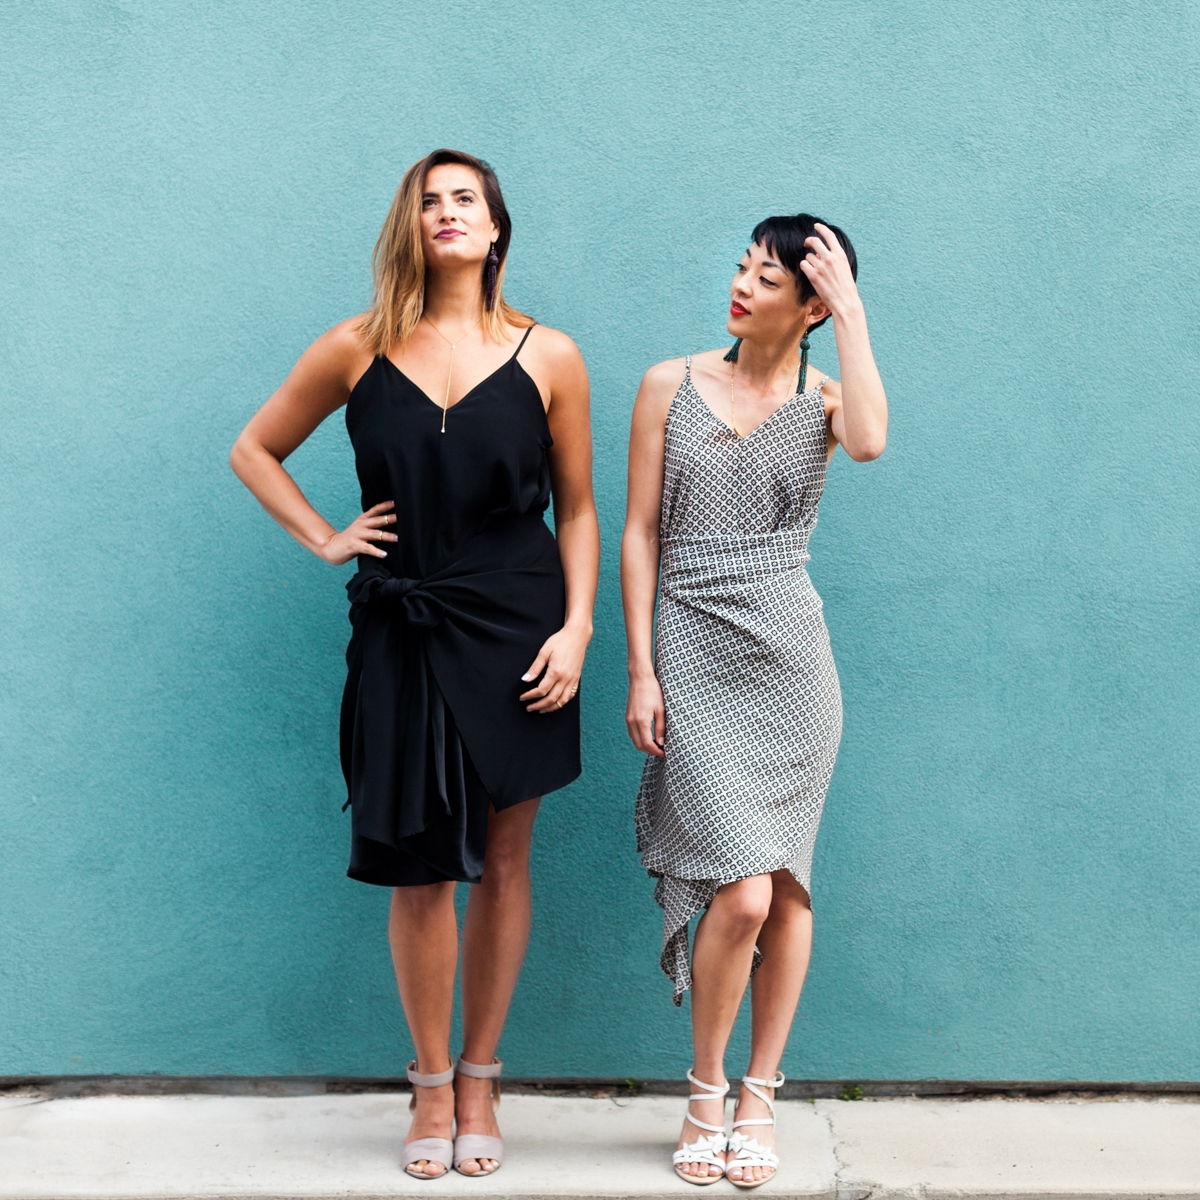 Save the world. - Being mindful with your shopping helps you #dresslikeitmatters. The purchase of your Pepper Dress means fair pay for our sewing partners here in CA!